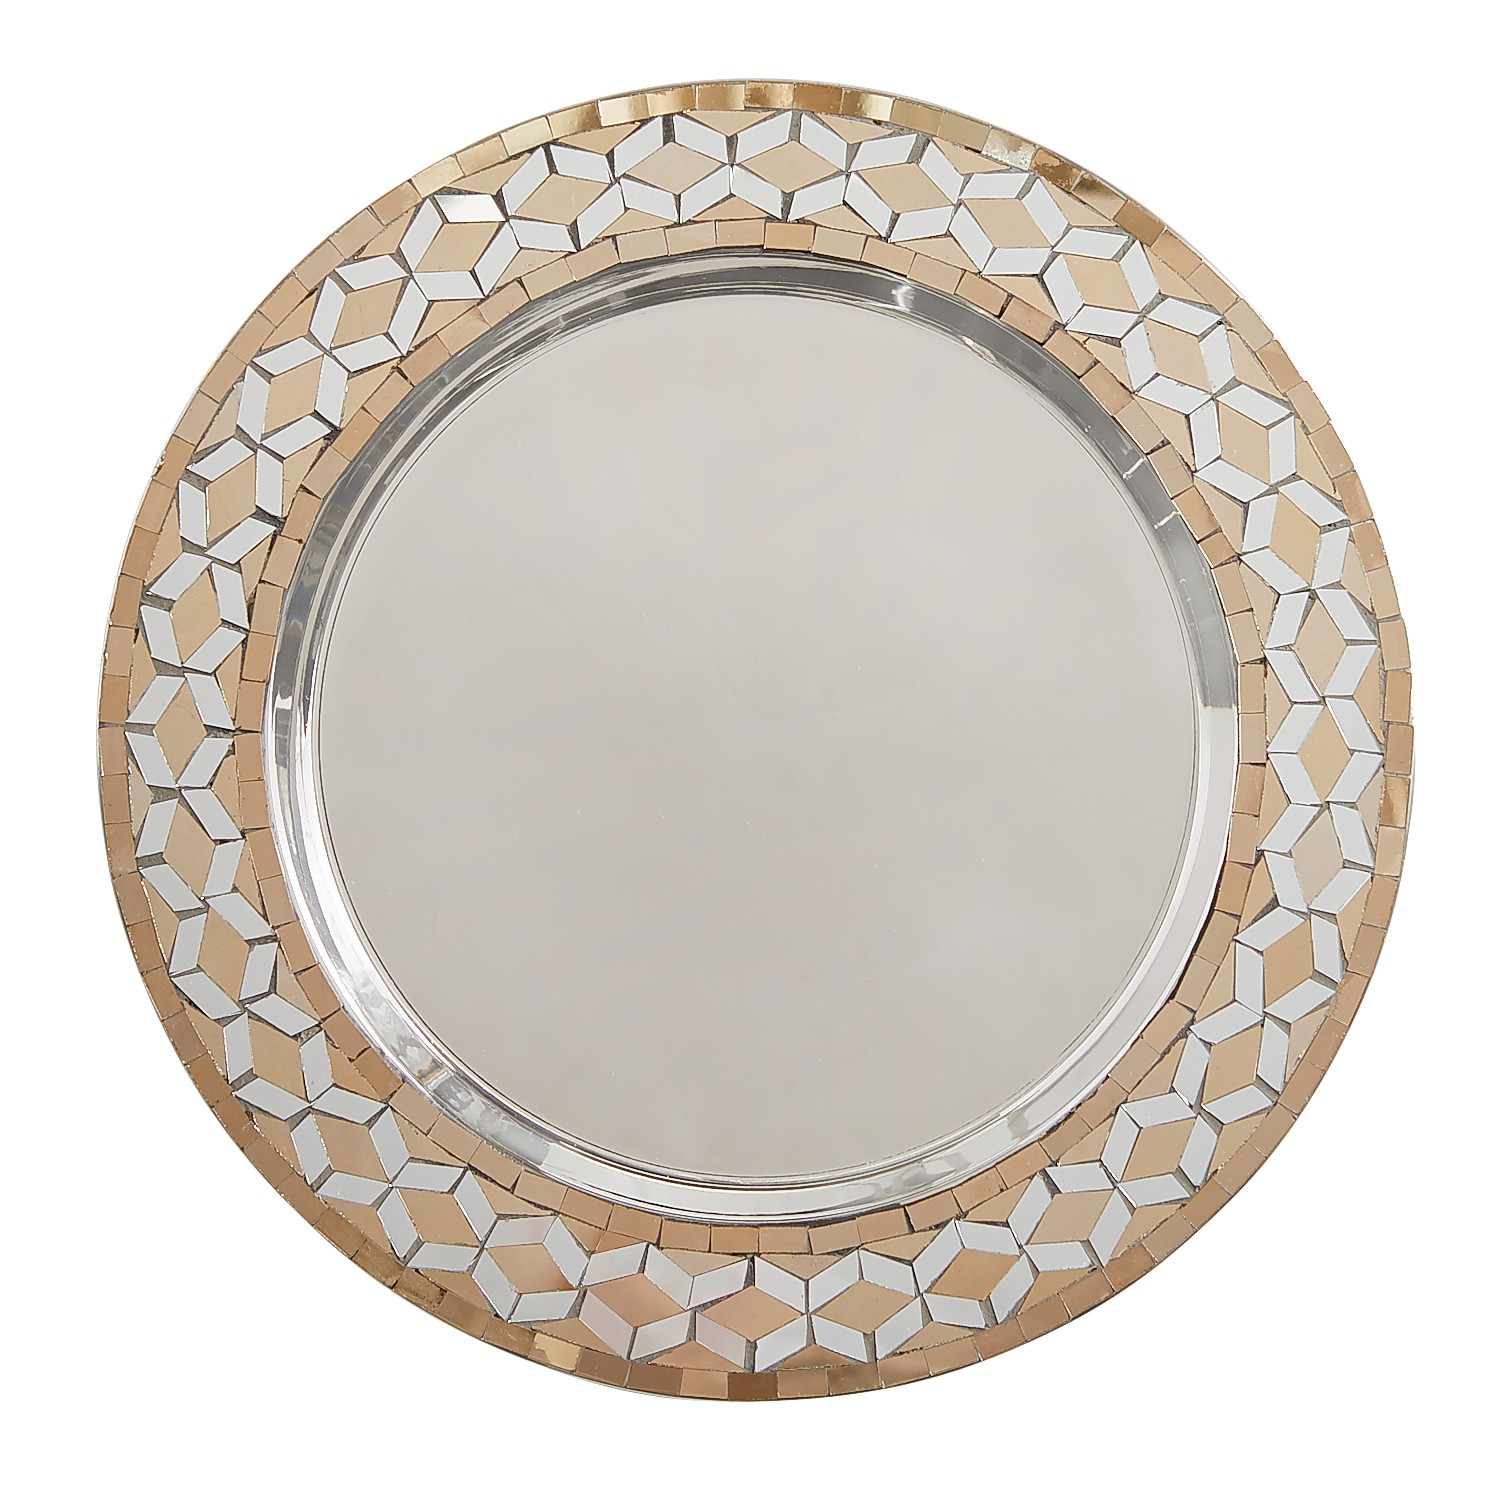 Gold & Silver Mirrored Charger Plate